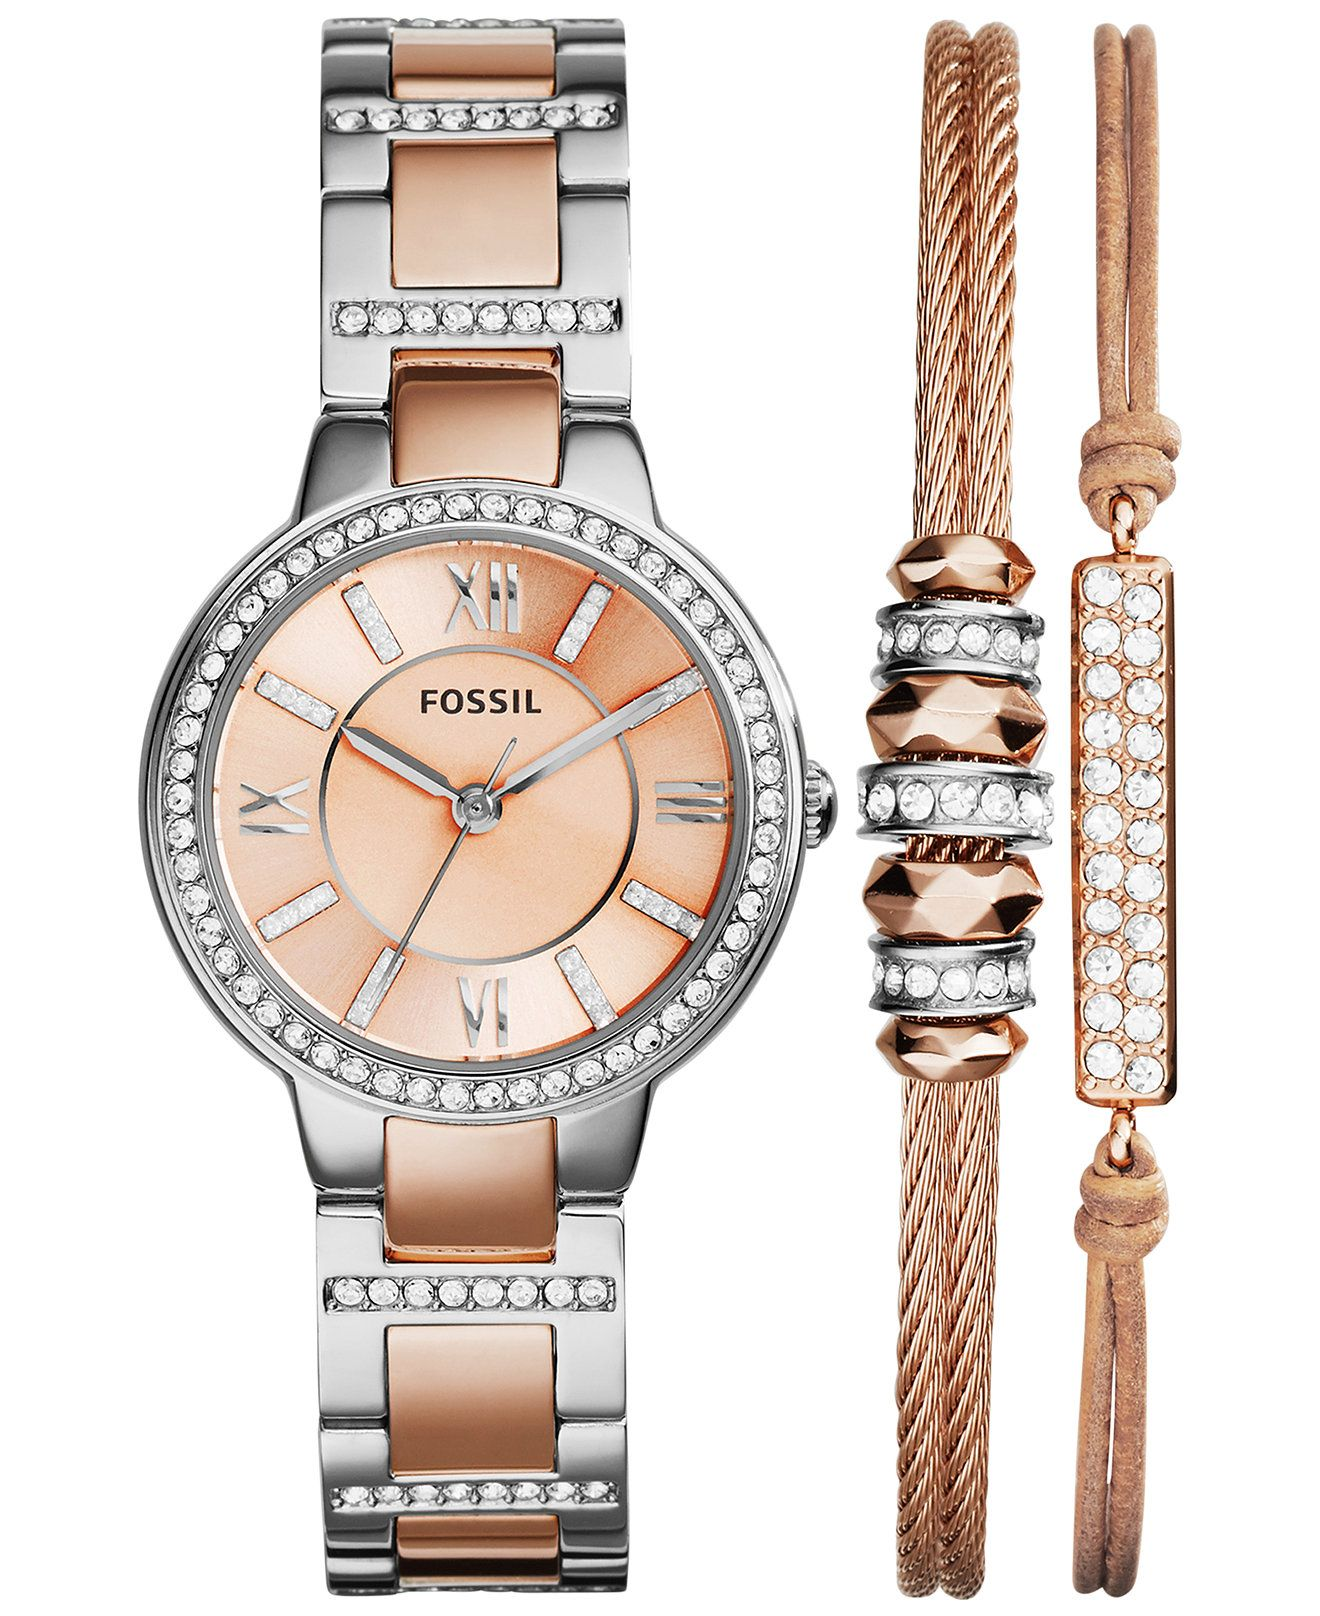 1e1a94e261a8 Fossil Women s Virginia Crystal Accent Two-Tone Stainless Steel Bracelet  Watch Set 30mm ES3697 - Watches - Jewelry   Watches - Macy s